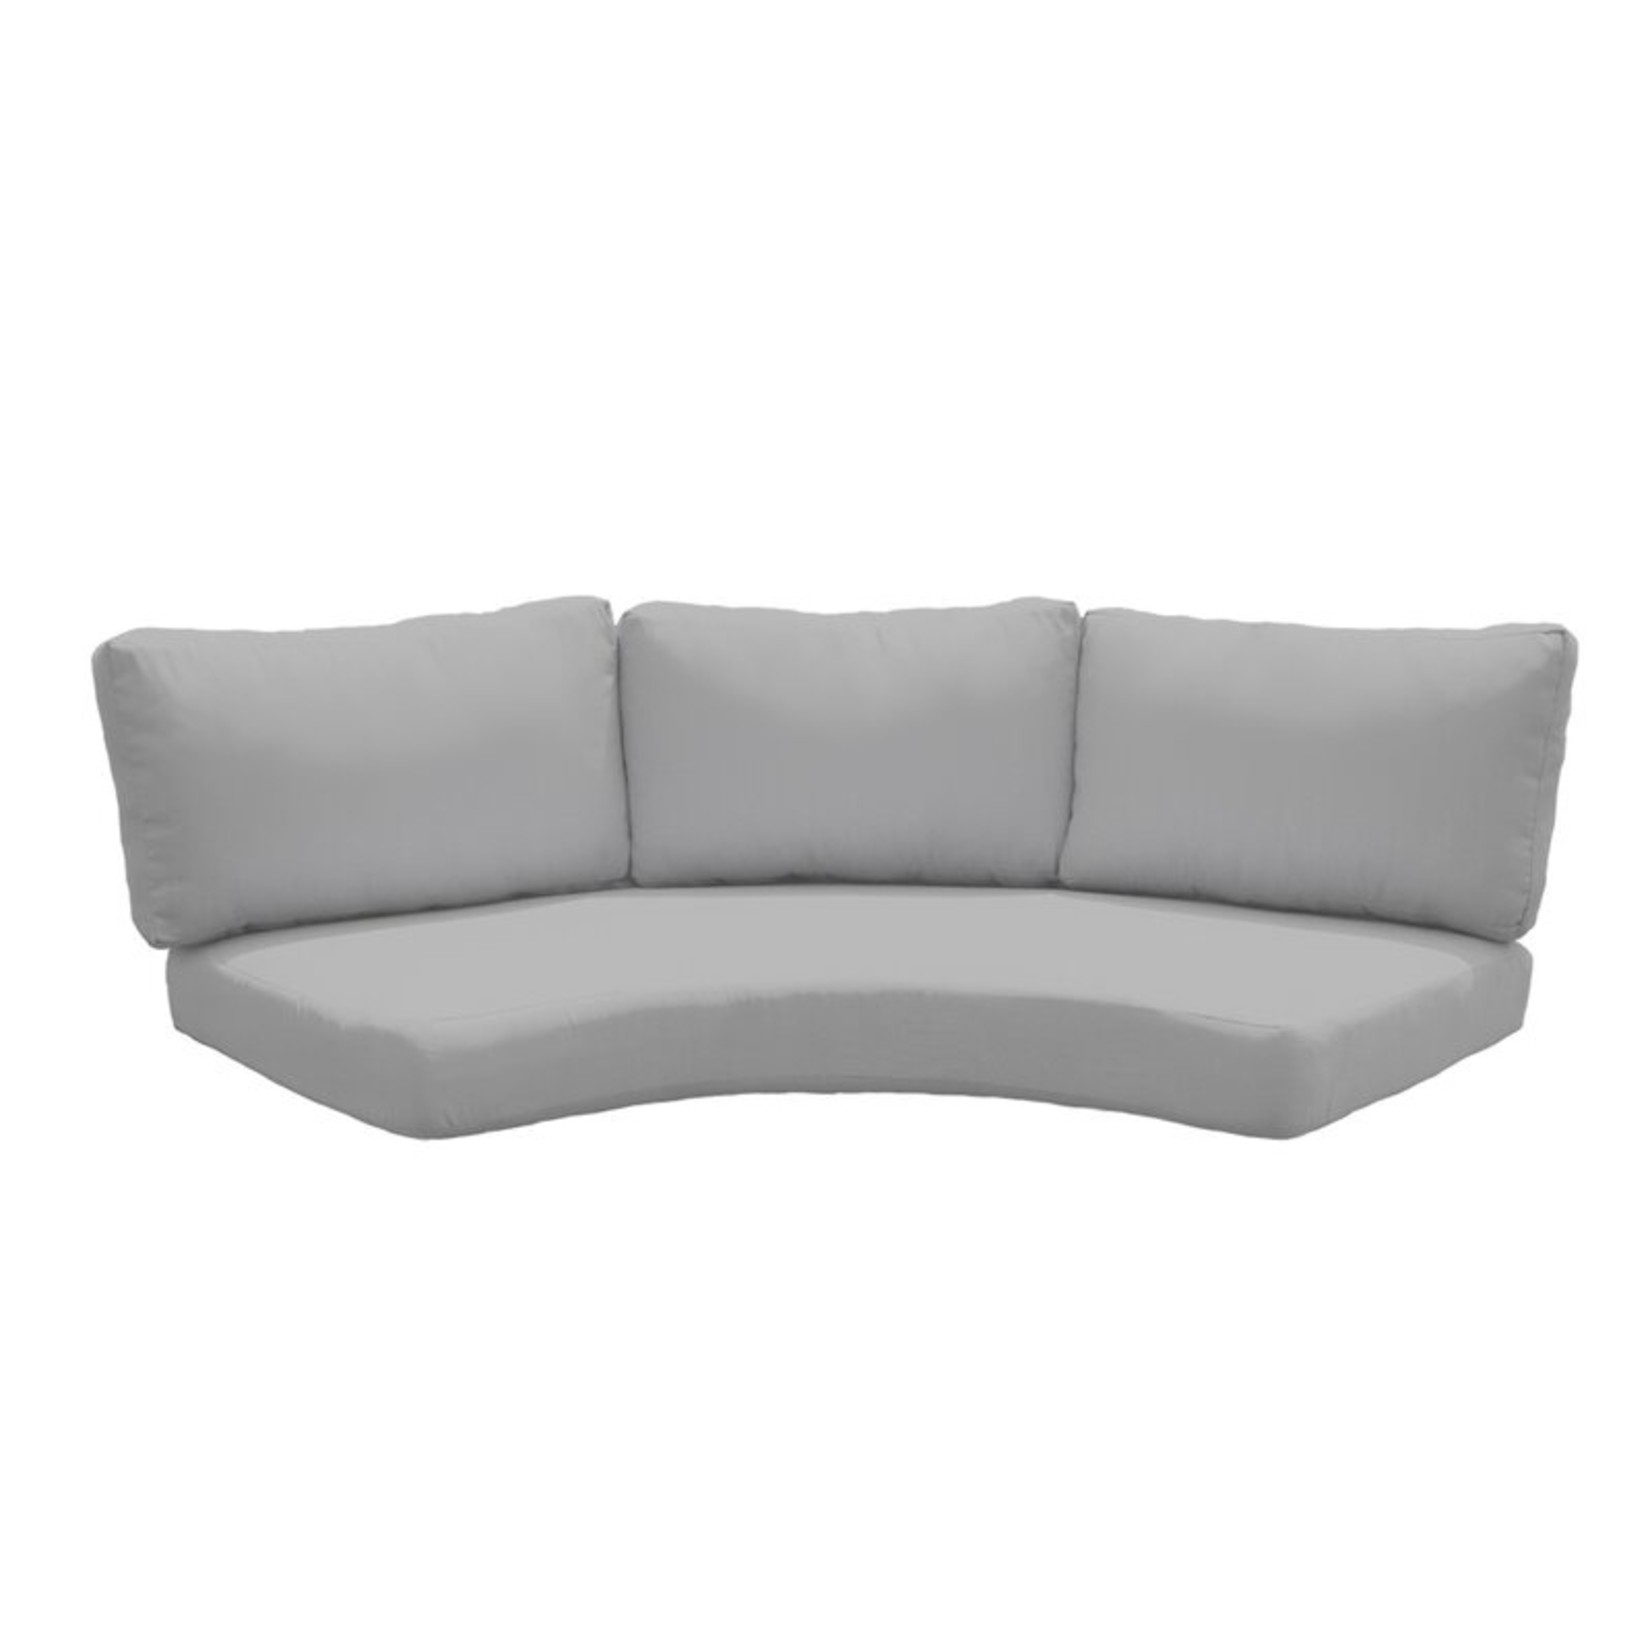 *Curved Sofa/3 backs - Indoor/Outdoor Cushion Cover (Covers Only) - Gray - Final Sale